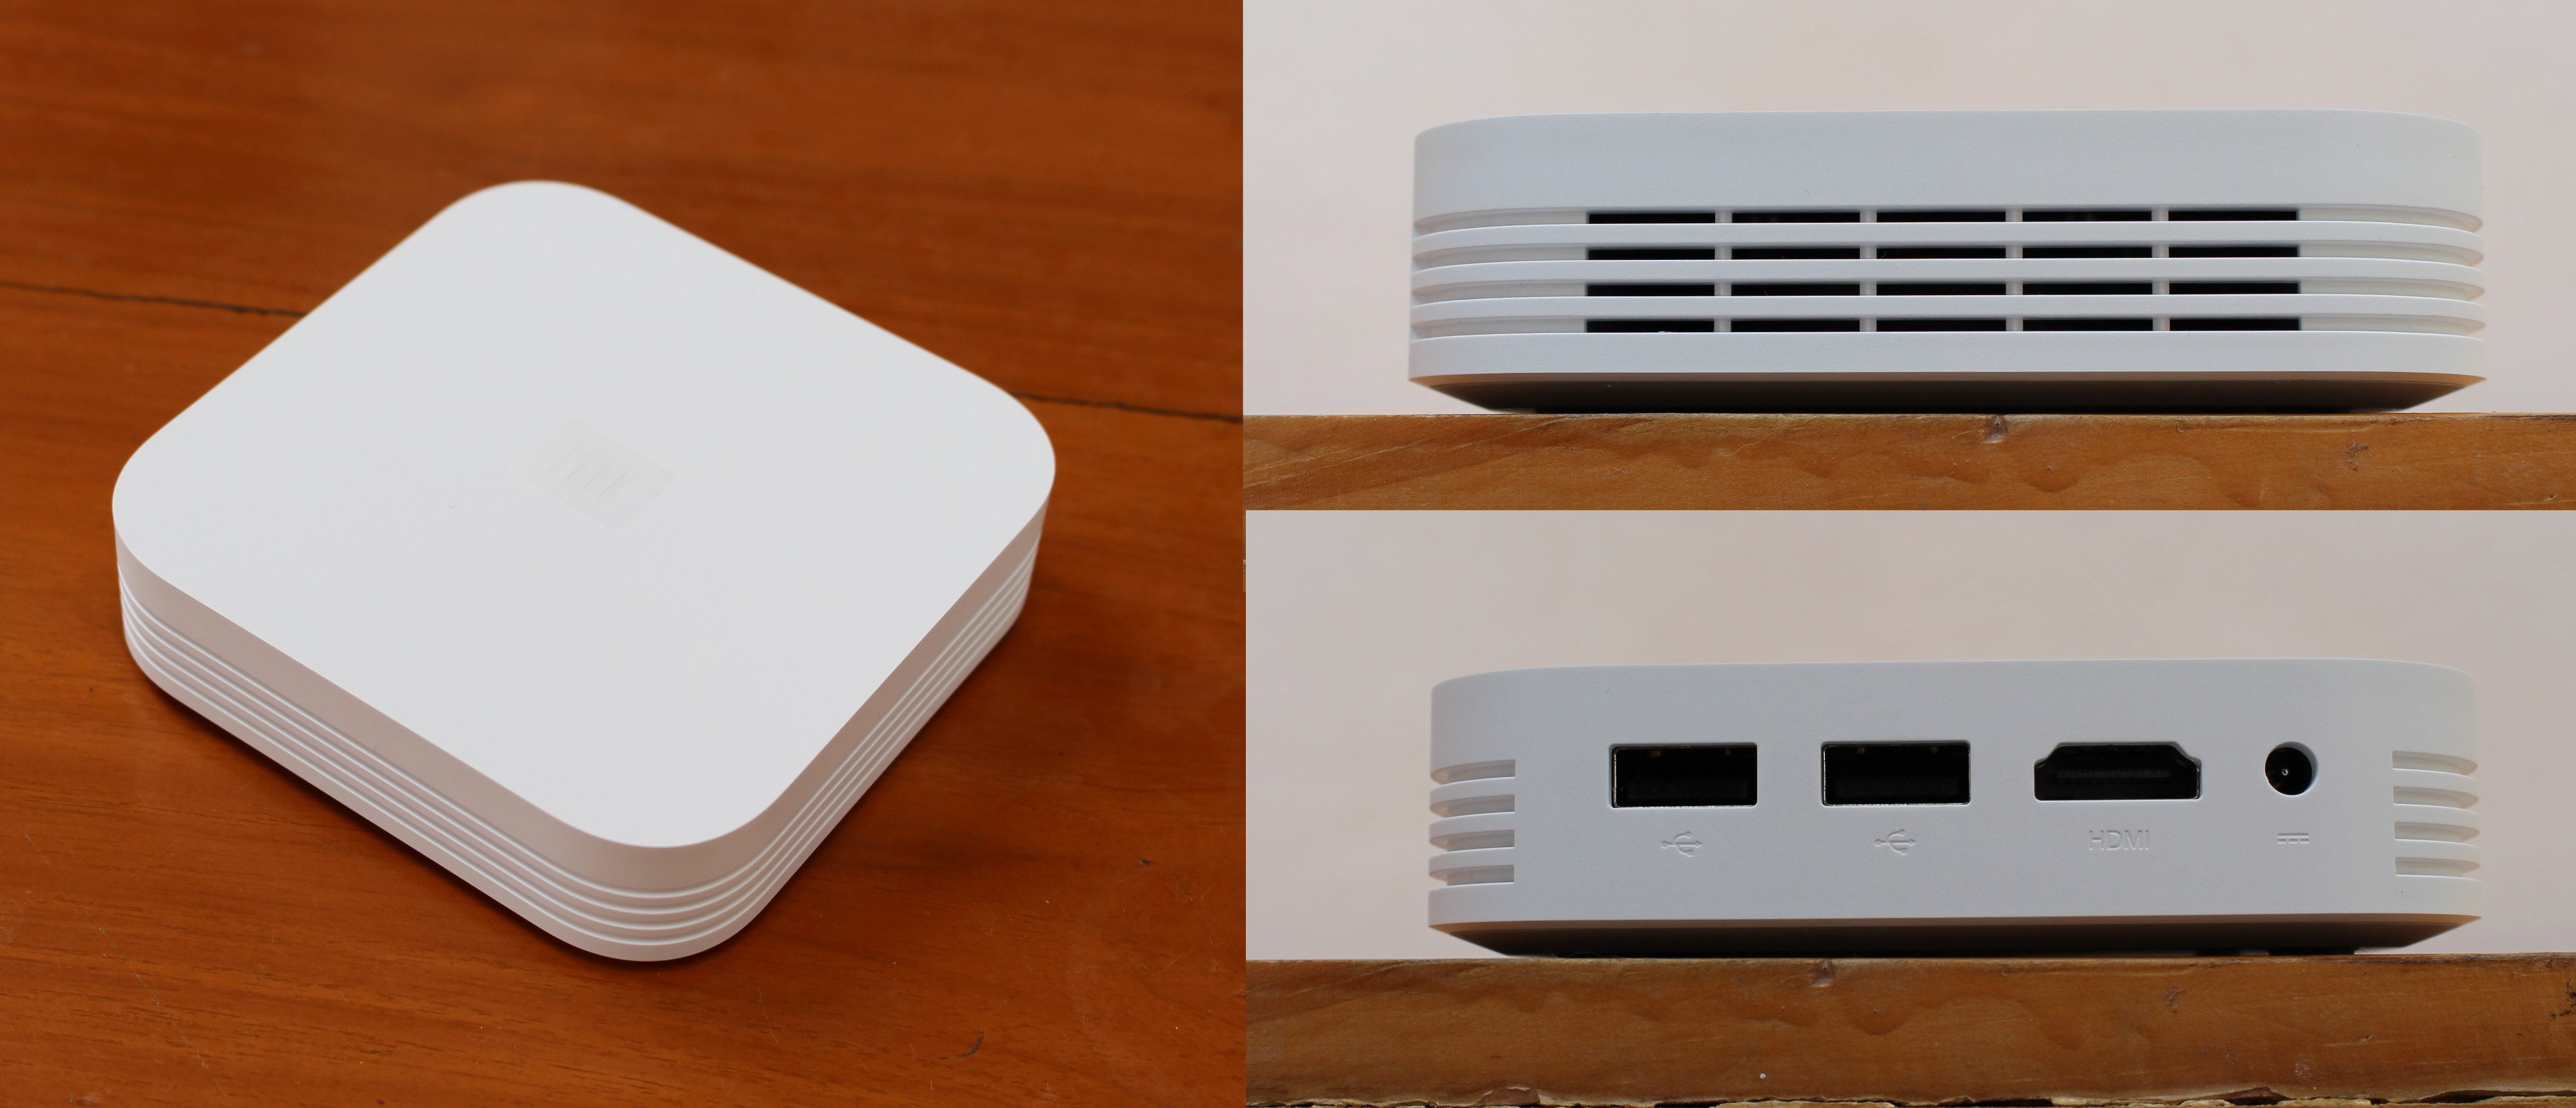 Xiaomi Mi Box 3 Enhanced Unboxing And Teardown